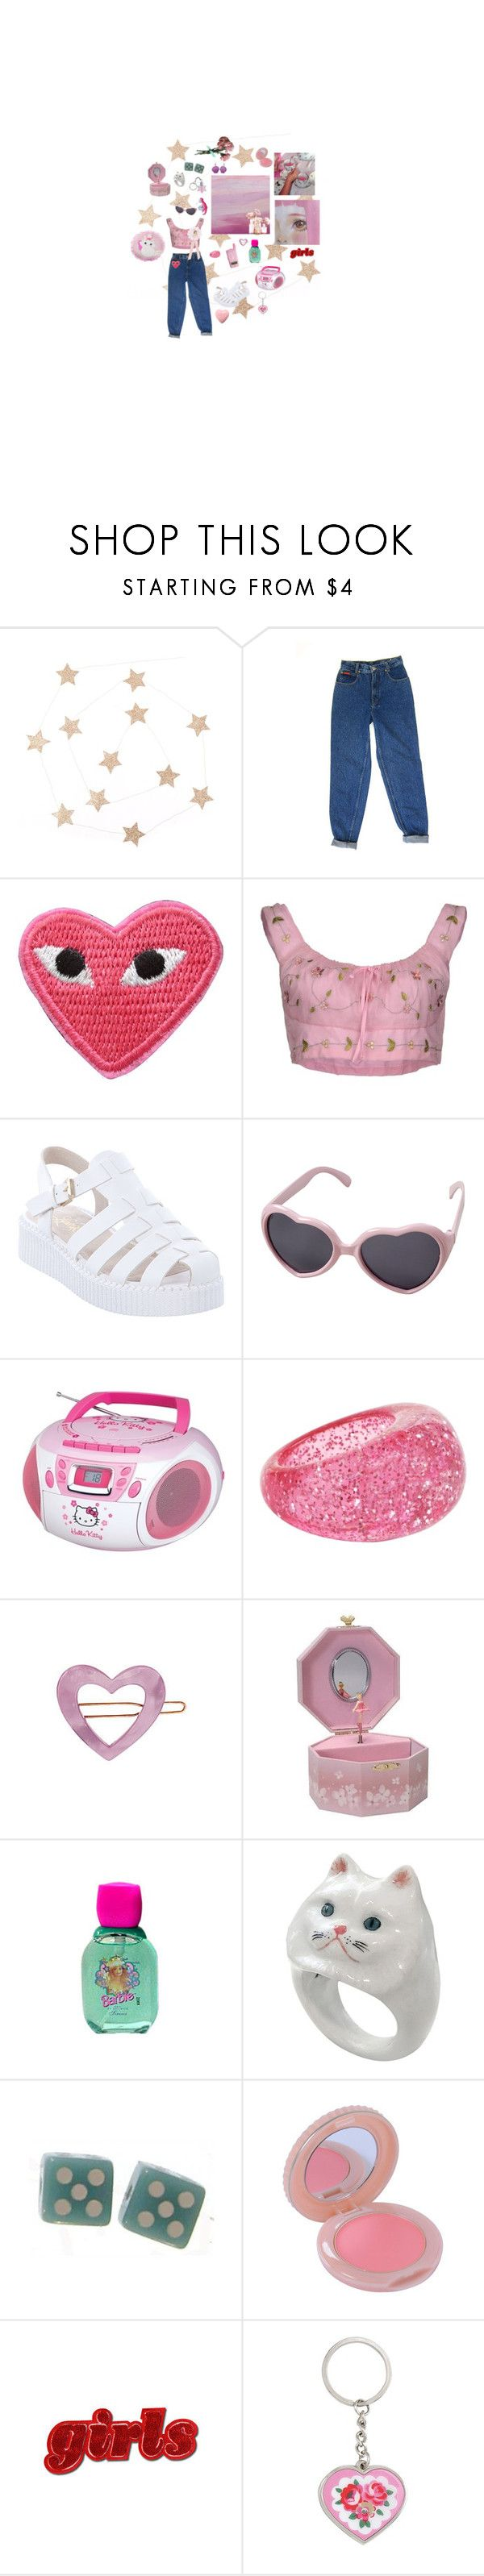 """yes sir"" by asongaboutbeingsad ❤ liked on Polyvore featuring Ermanno Scervino, Lipstik, Hello Kitty, Aéropostale, France Luxe, Mattel, Nach Bijoux, Paul & Joe, Cath Kidston and Disney"